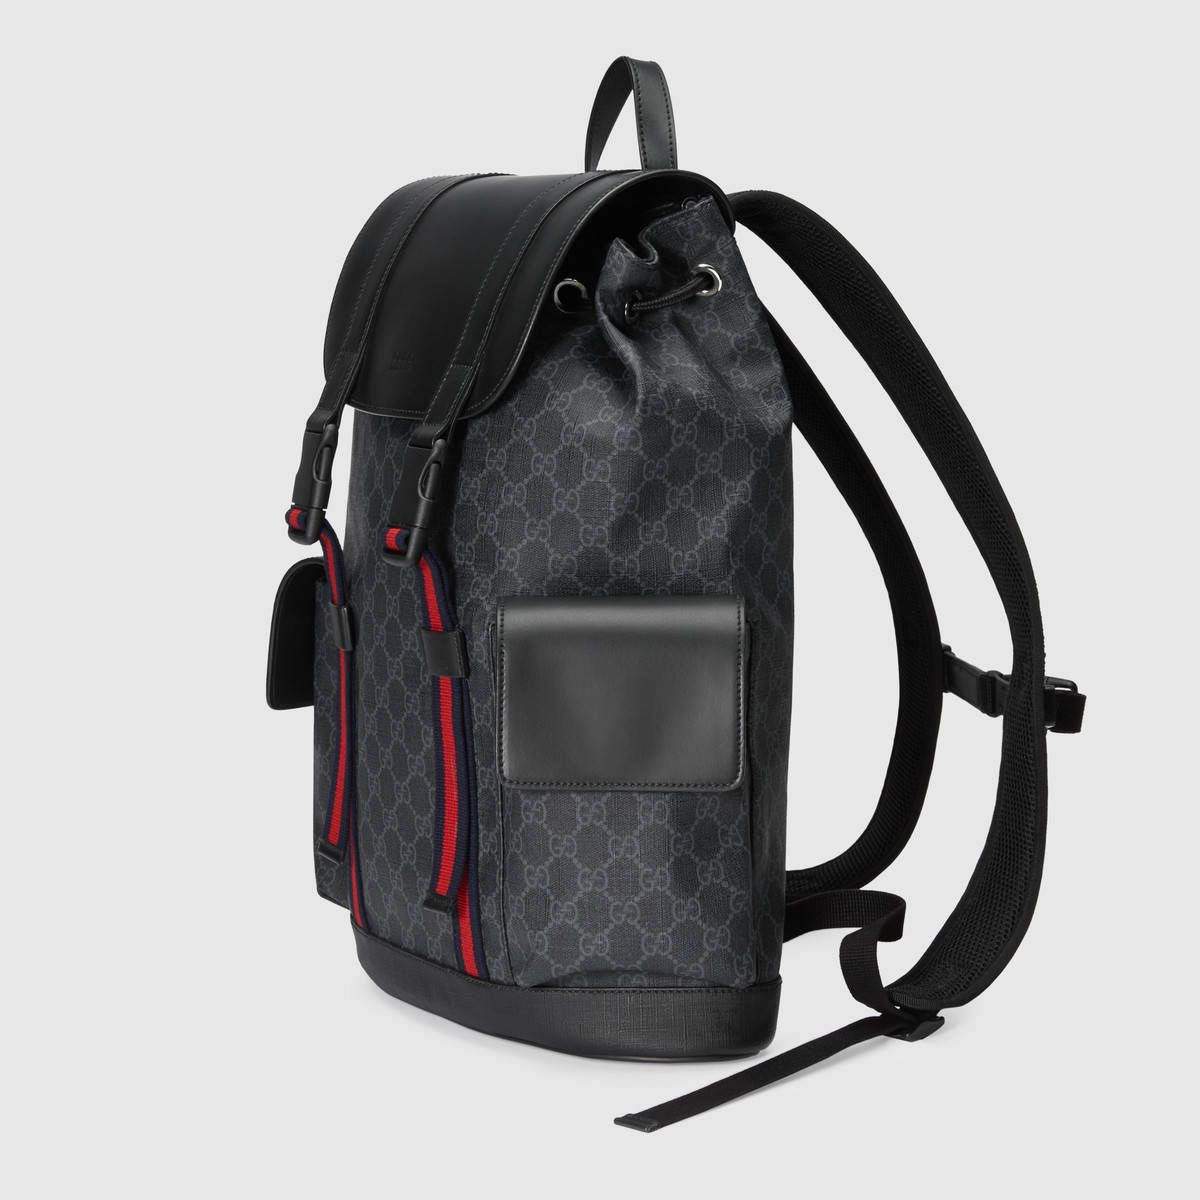 329a51b89d16 Gucci Soft GG Supreme backpack Detail 2 | bags in 2019 | Supreme ...